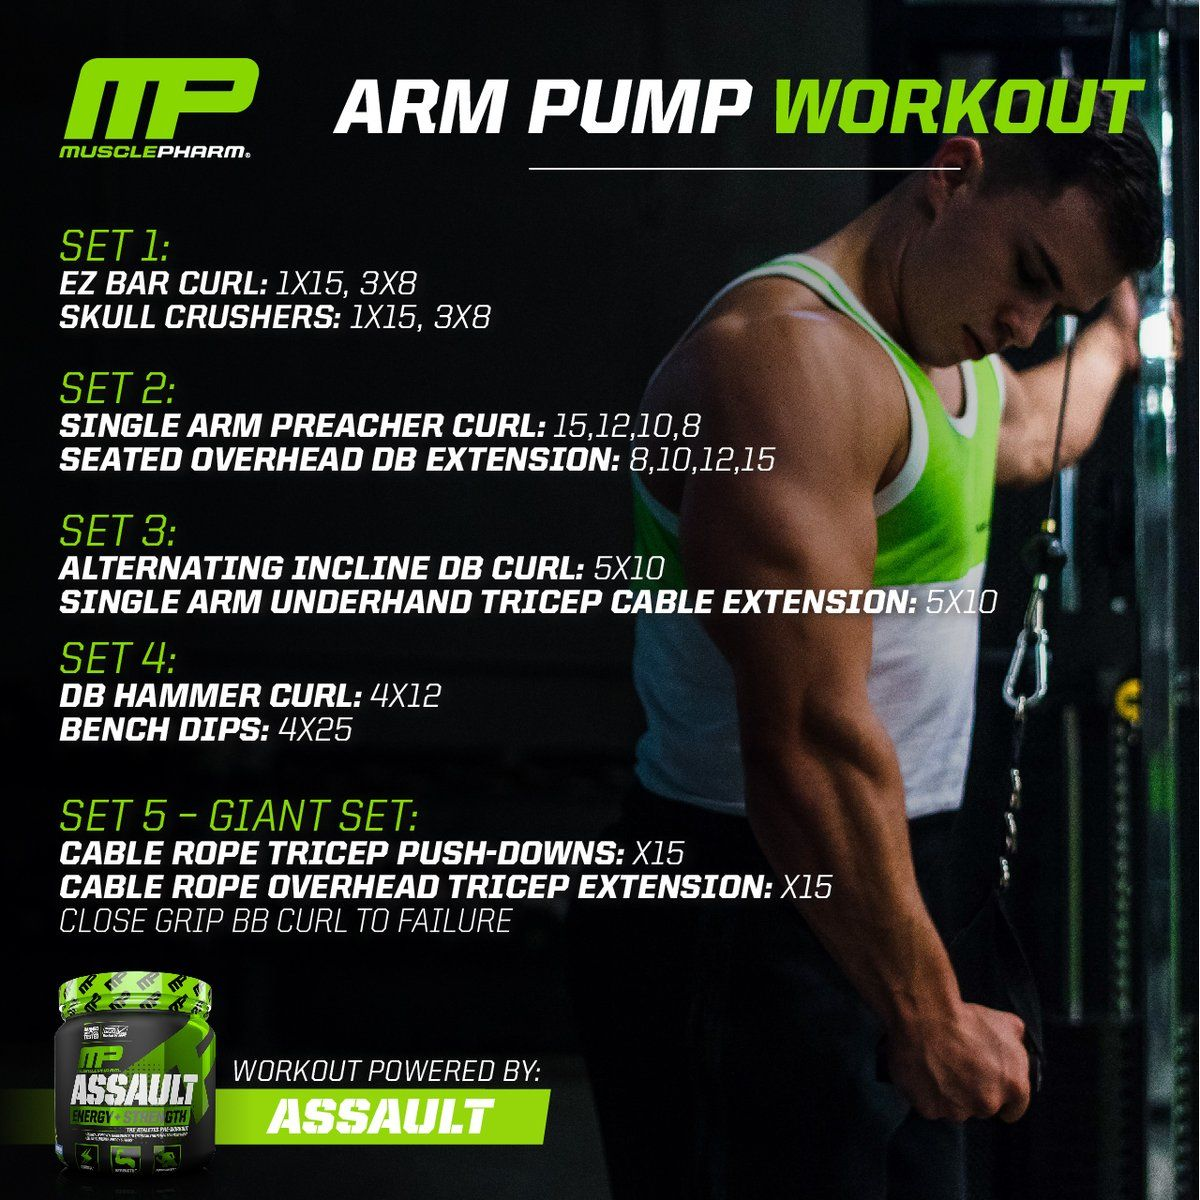 Embedded Body Pump Workout Musclepharm Workouts Biceps Workout